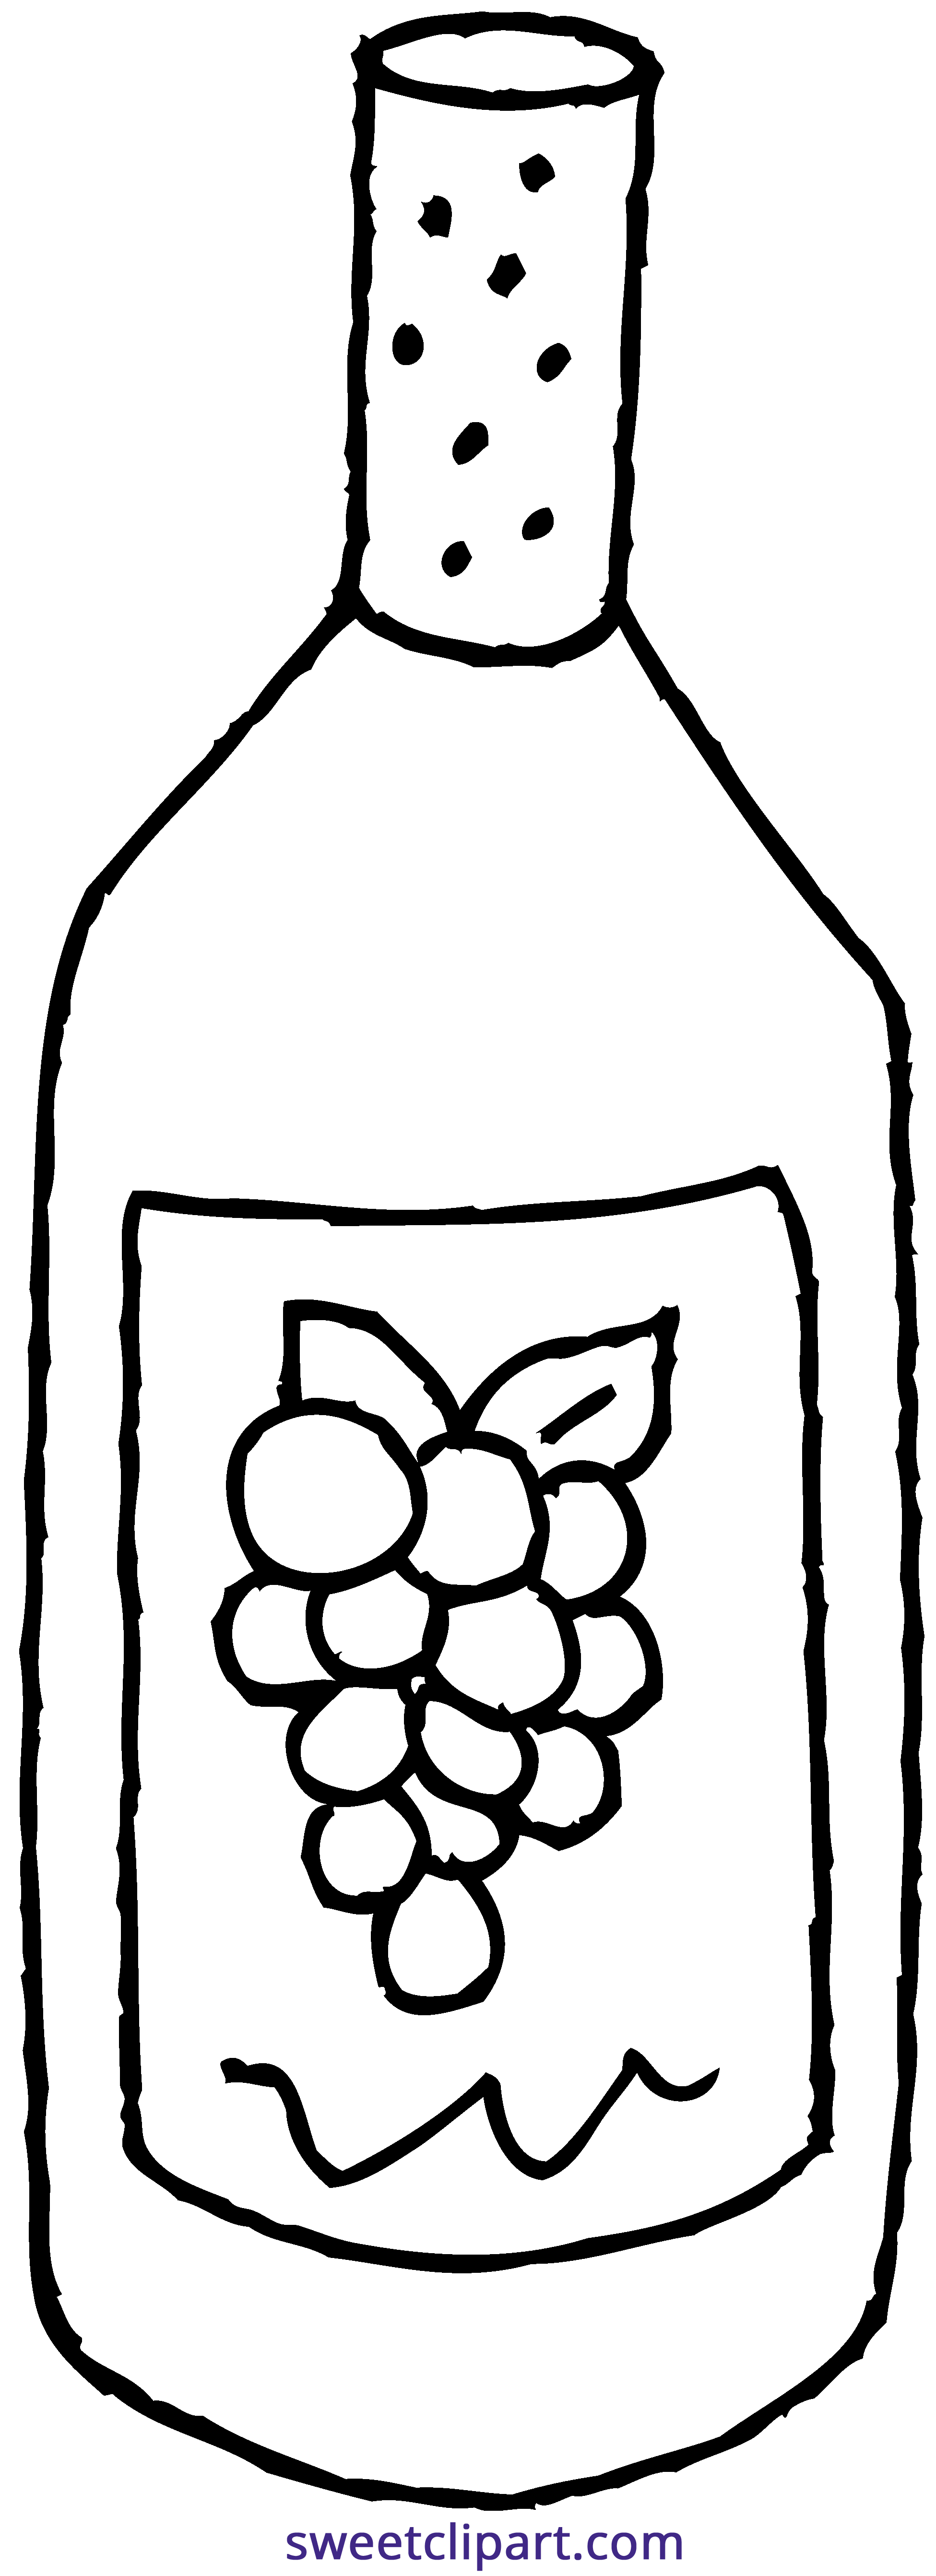 Wine bottle page sweet. Mail clipart coloring sheet